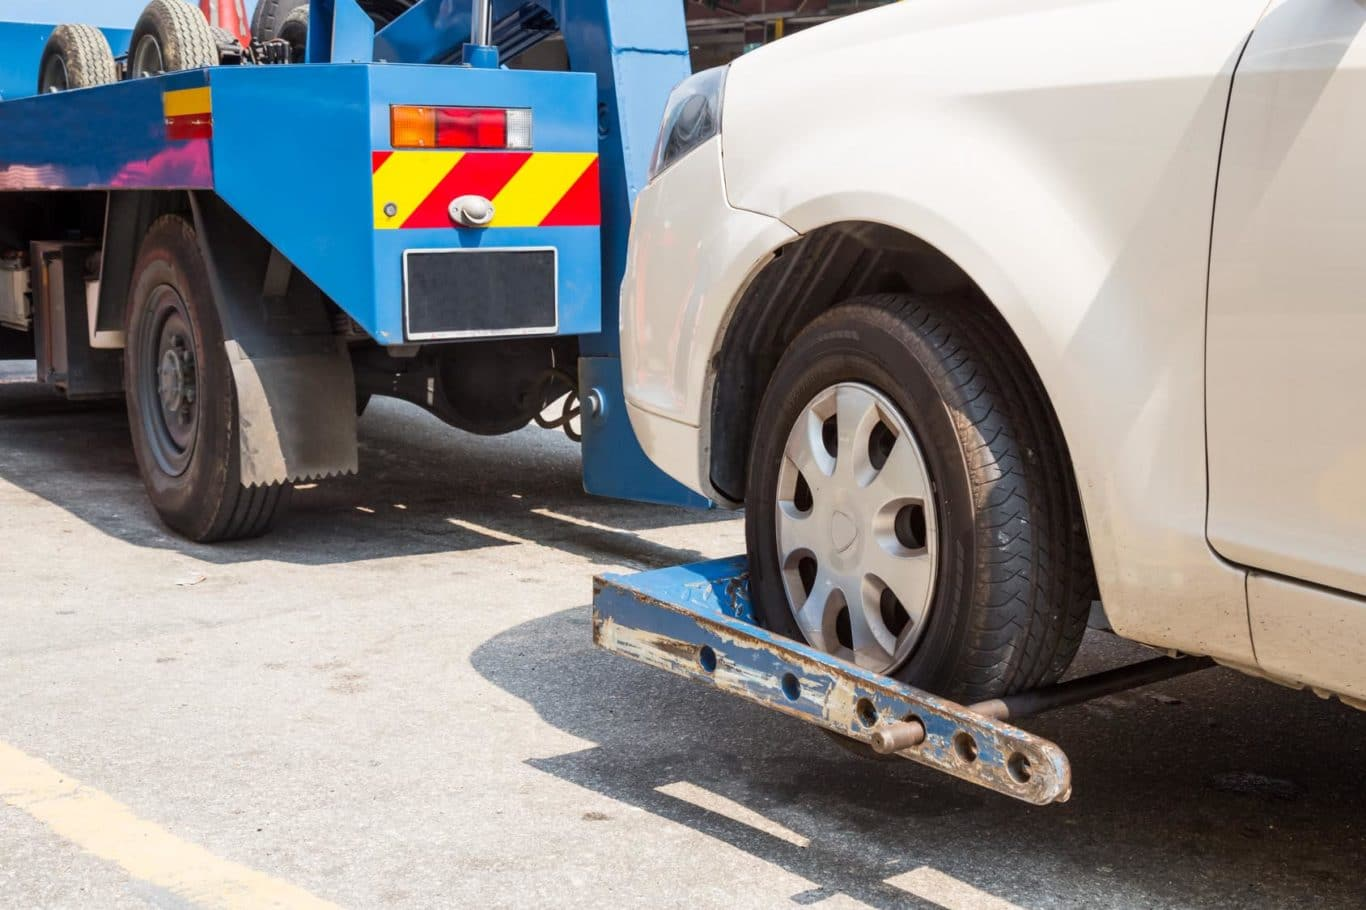 Kilternan expert Car Towing services